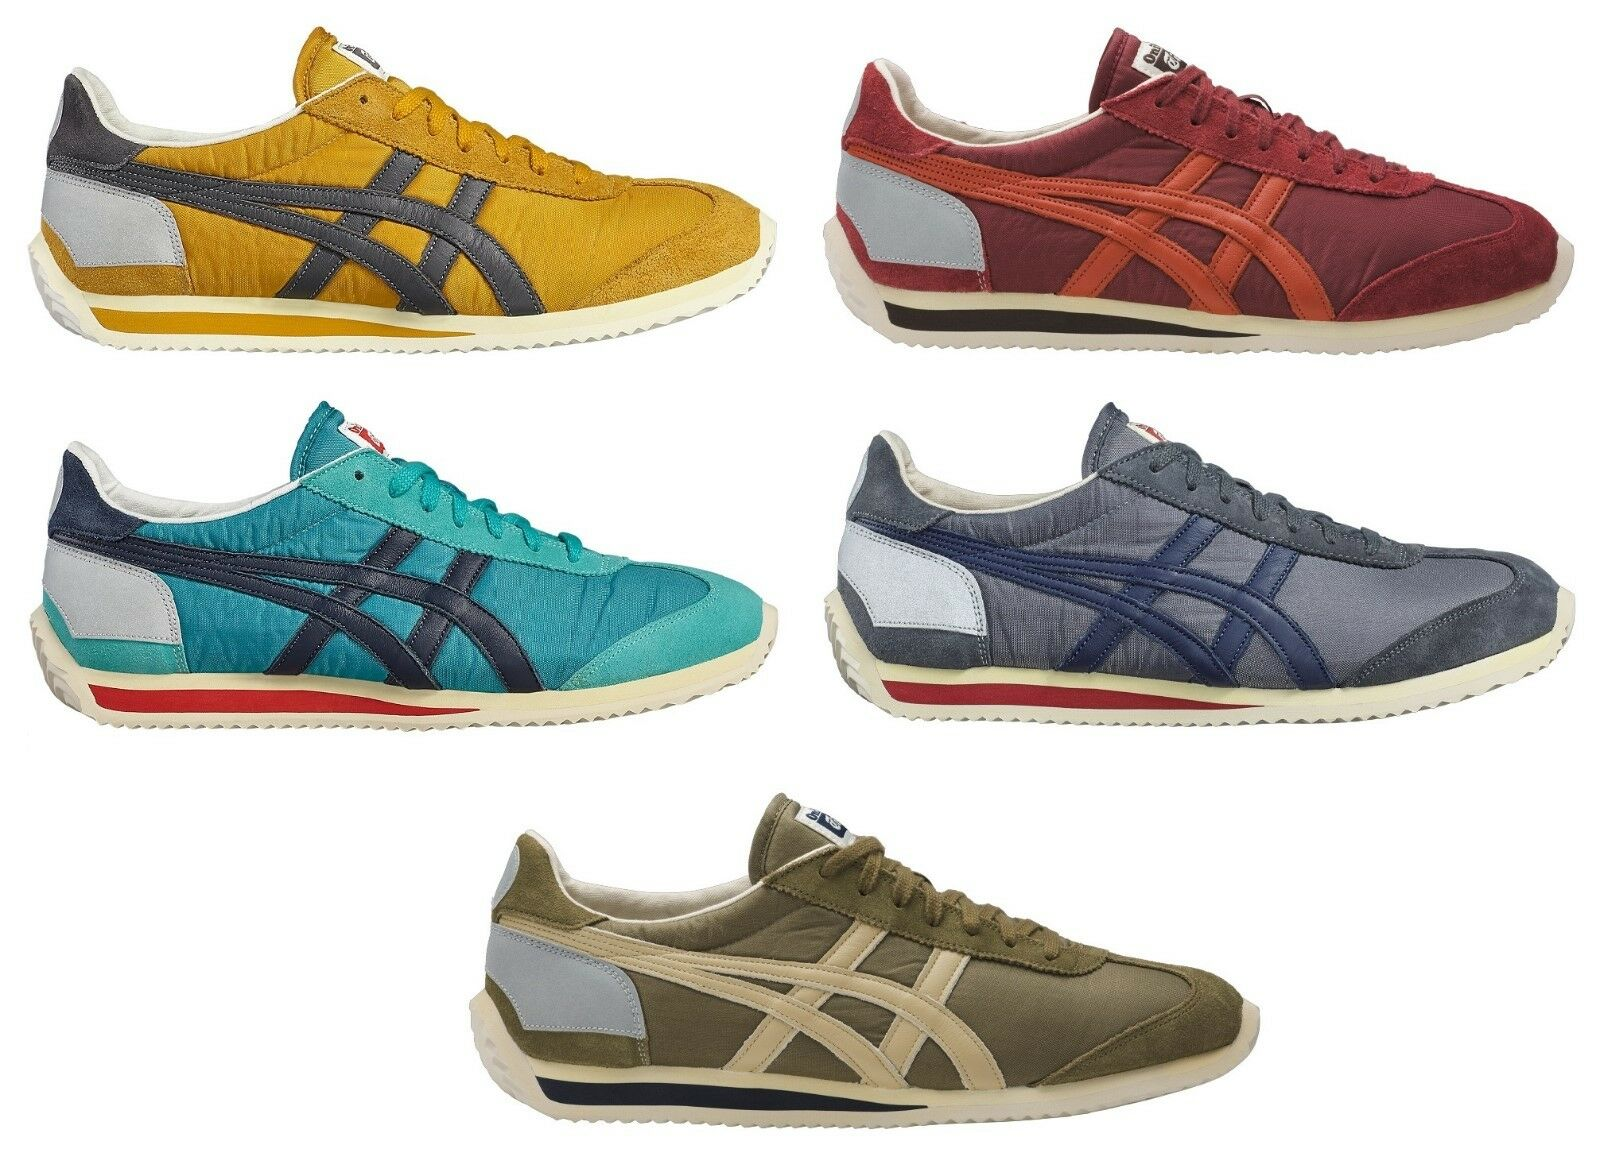 ZAPATOS ASICS ONITSUKA TIGER TIGER TIGER CALIFORNIA 78 - MEXICO 66 LIMITED EDITION VINTAGE 849c47